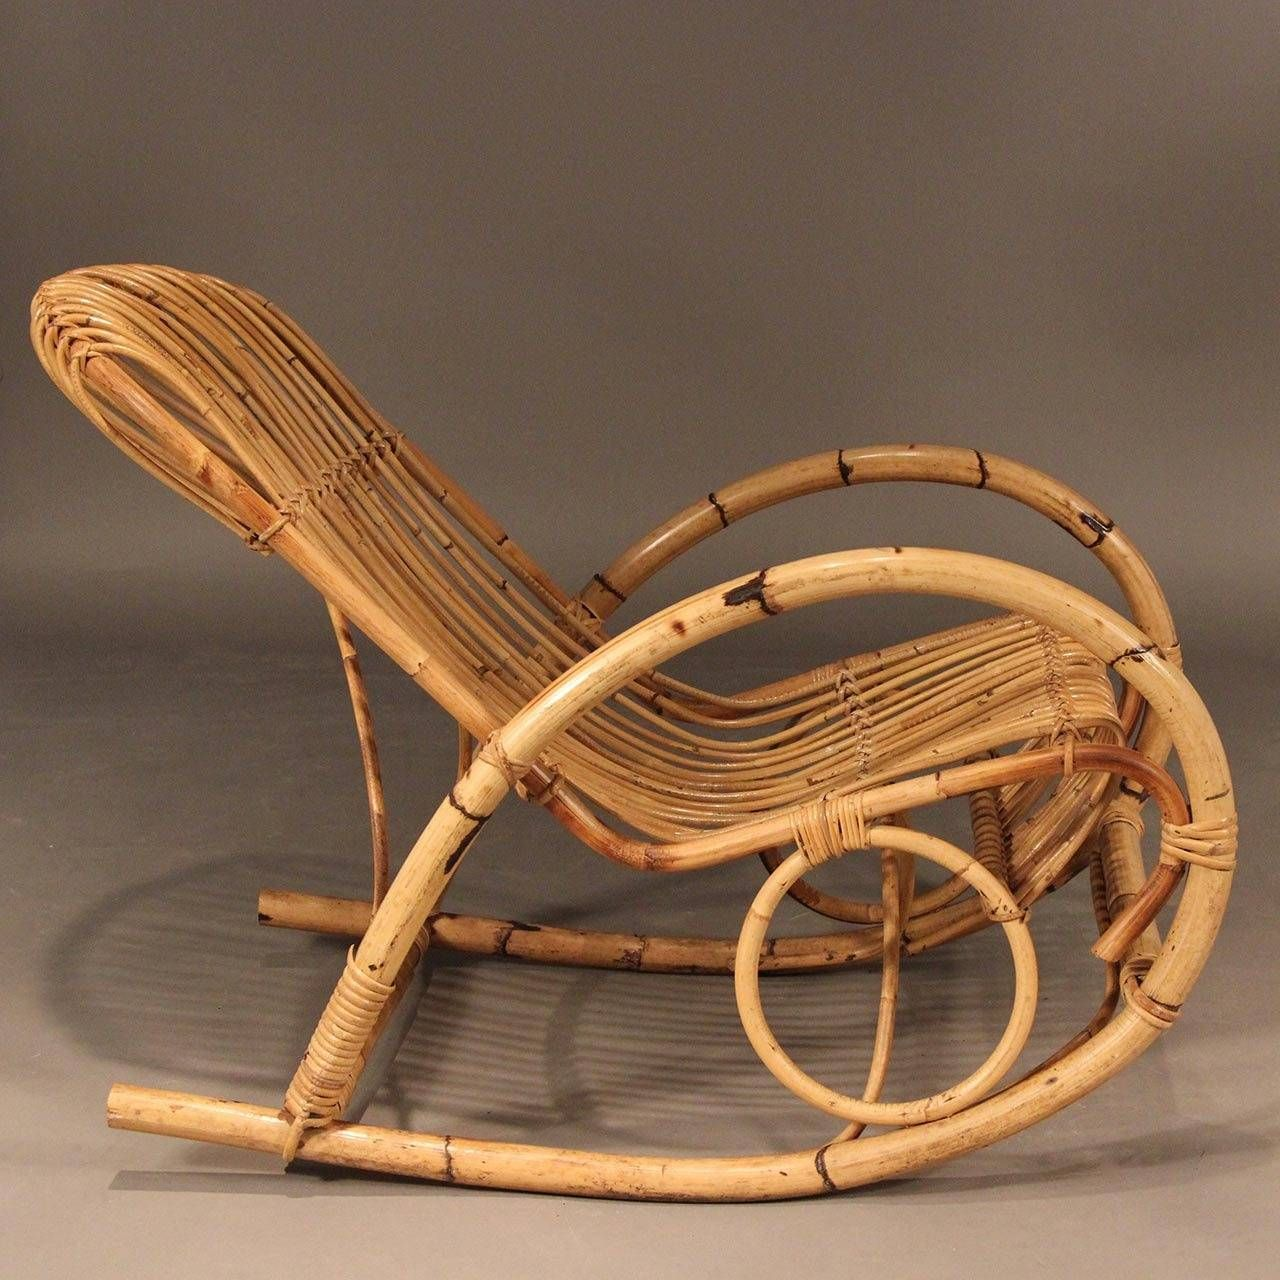 Swell Pin By Anjani Kumar On Stuff Rattan Rocking Chair Rocking Gmtry Best Dining Table And Chair Ideas Images Gmtryco